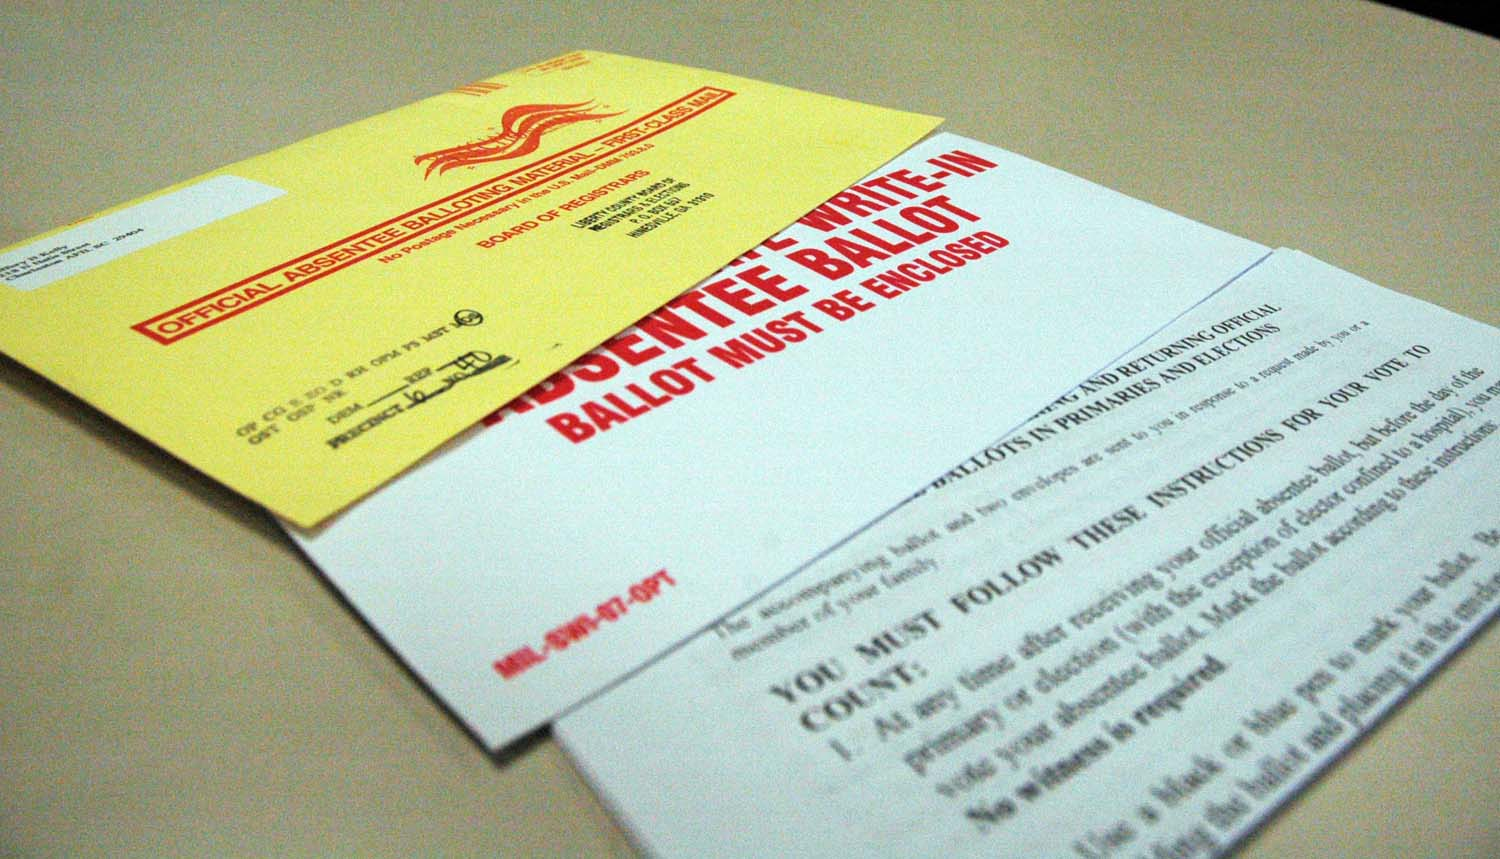 Pennsylvania voters can now apply for an absentee ballot online.